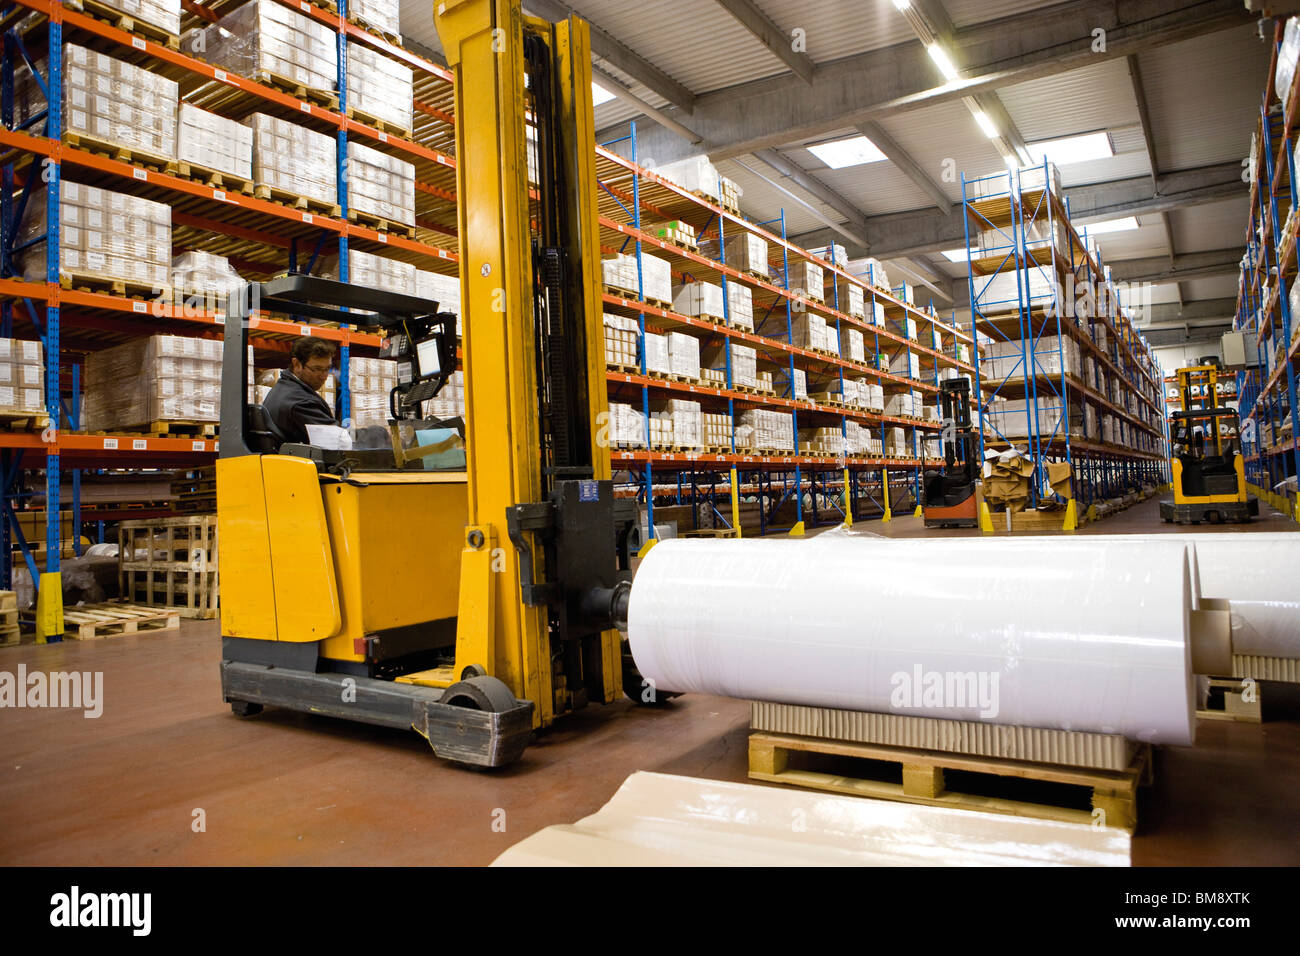 Warehouse stocked with coated fabic products - Stock Image